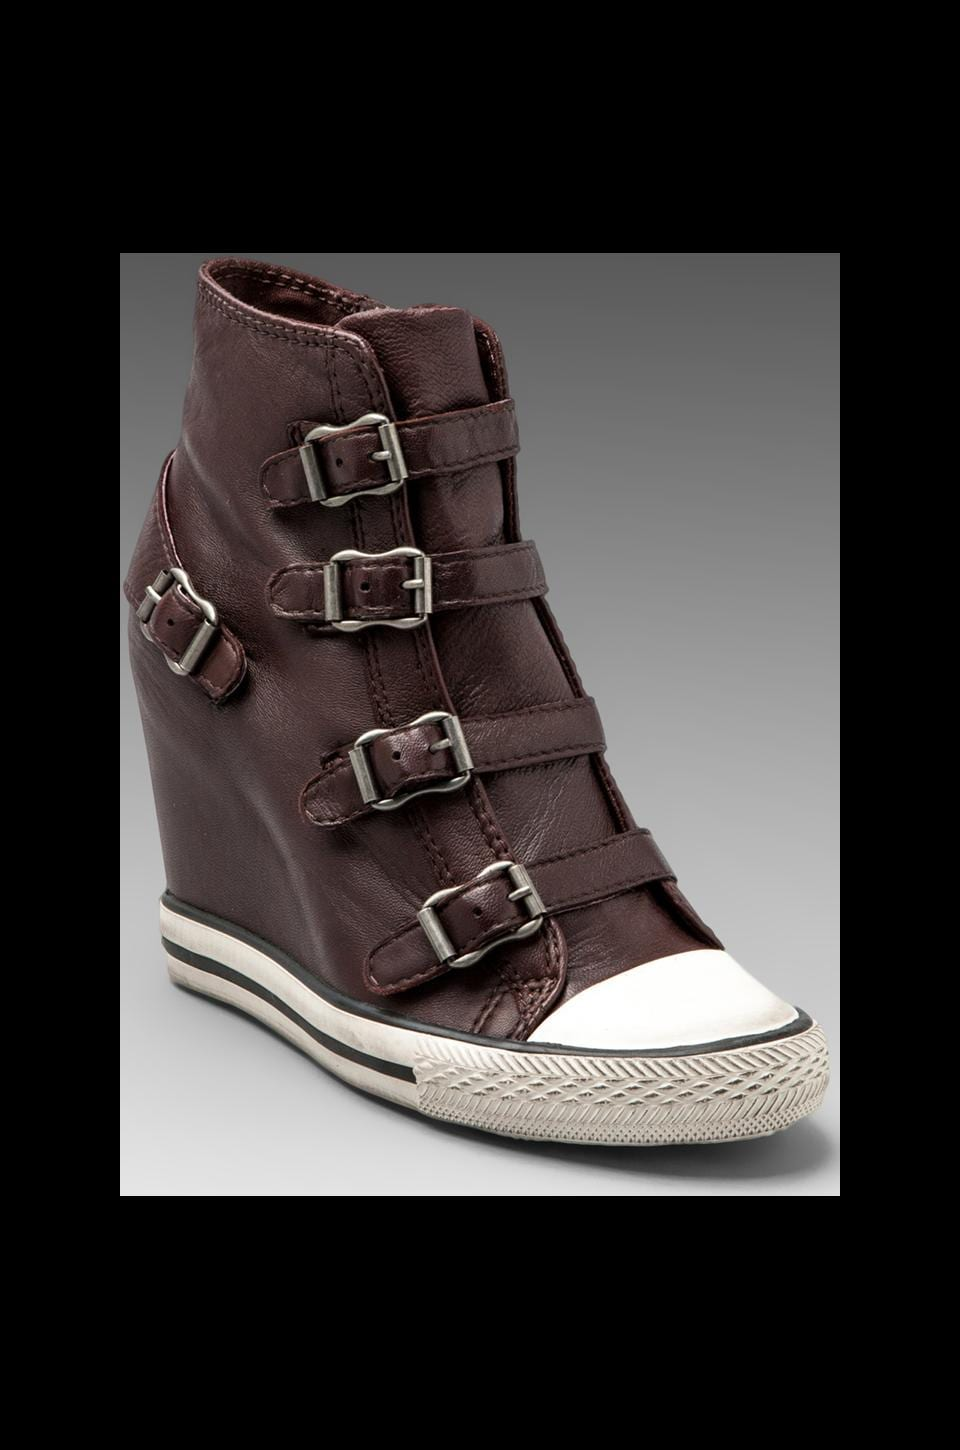 Ash United Wedge Buckle Sneaker in Prune